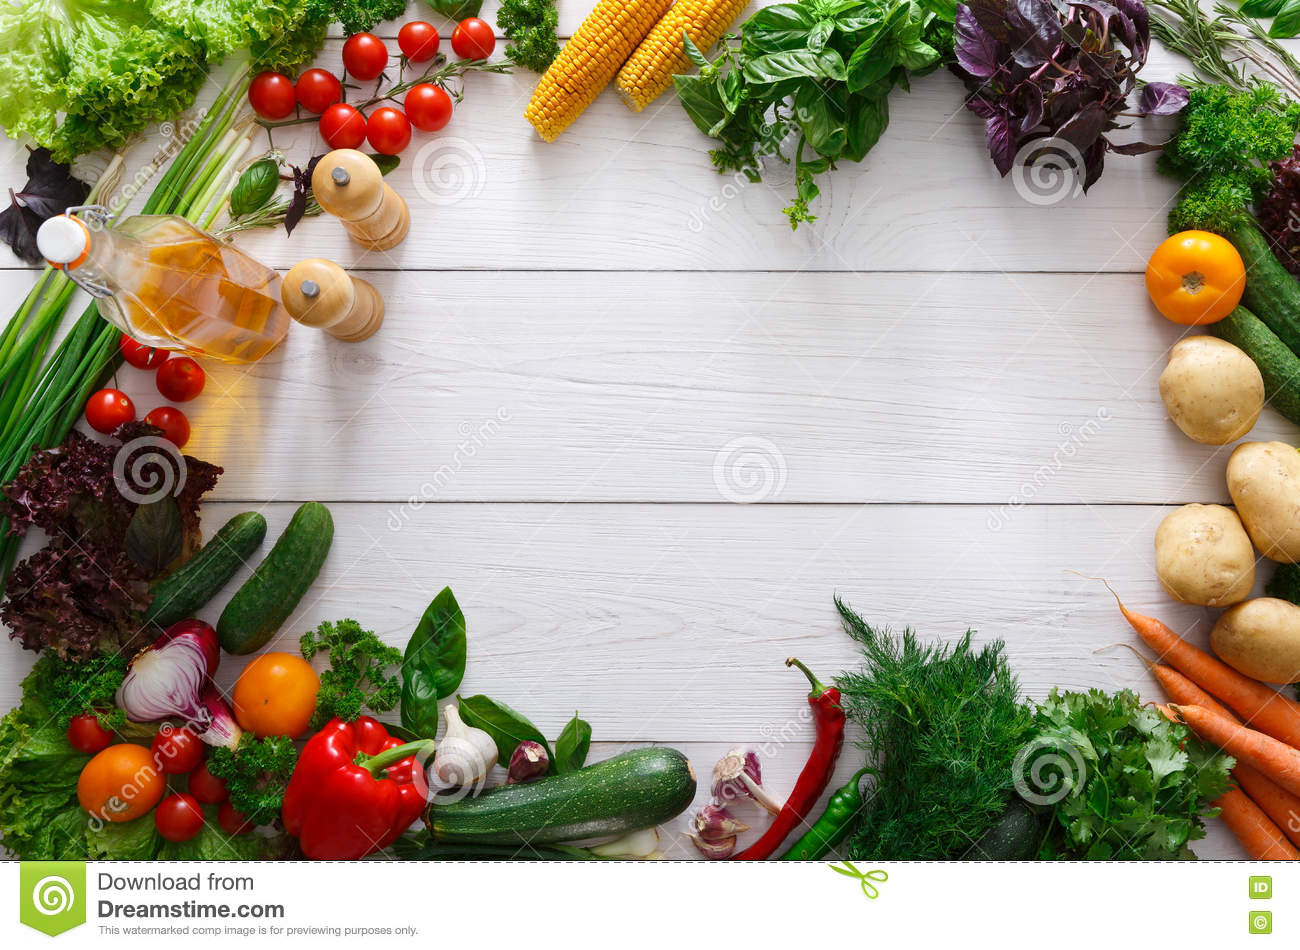 Fresh vegetables frame on white wooden background with